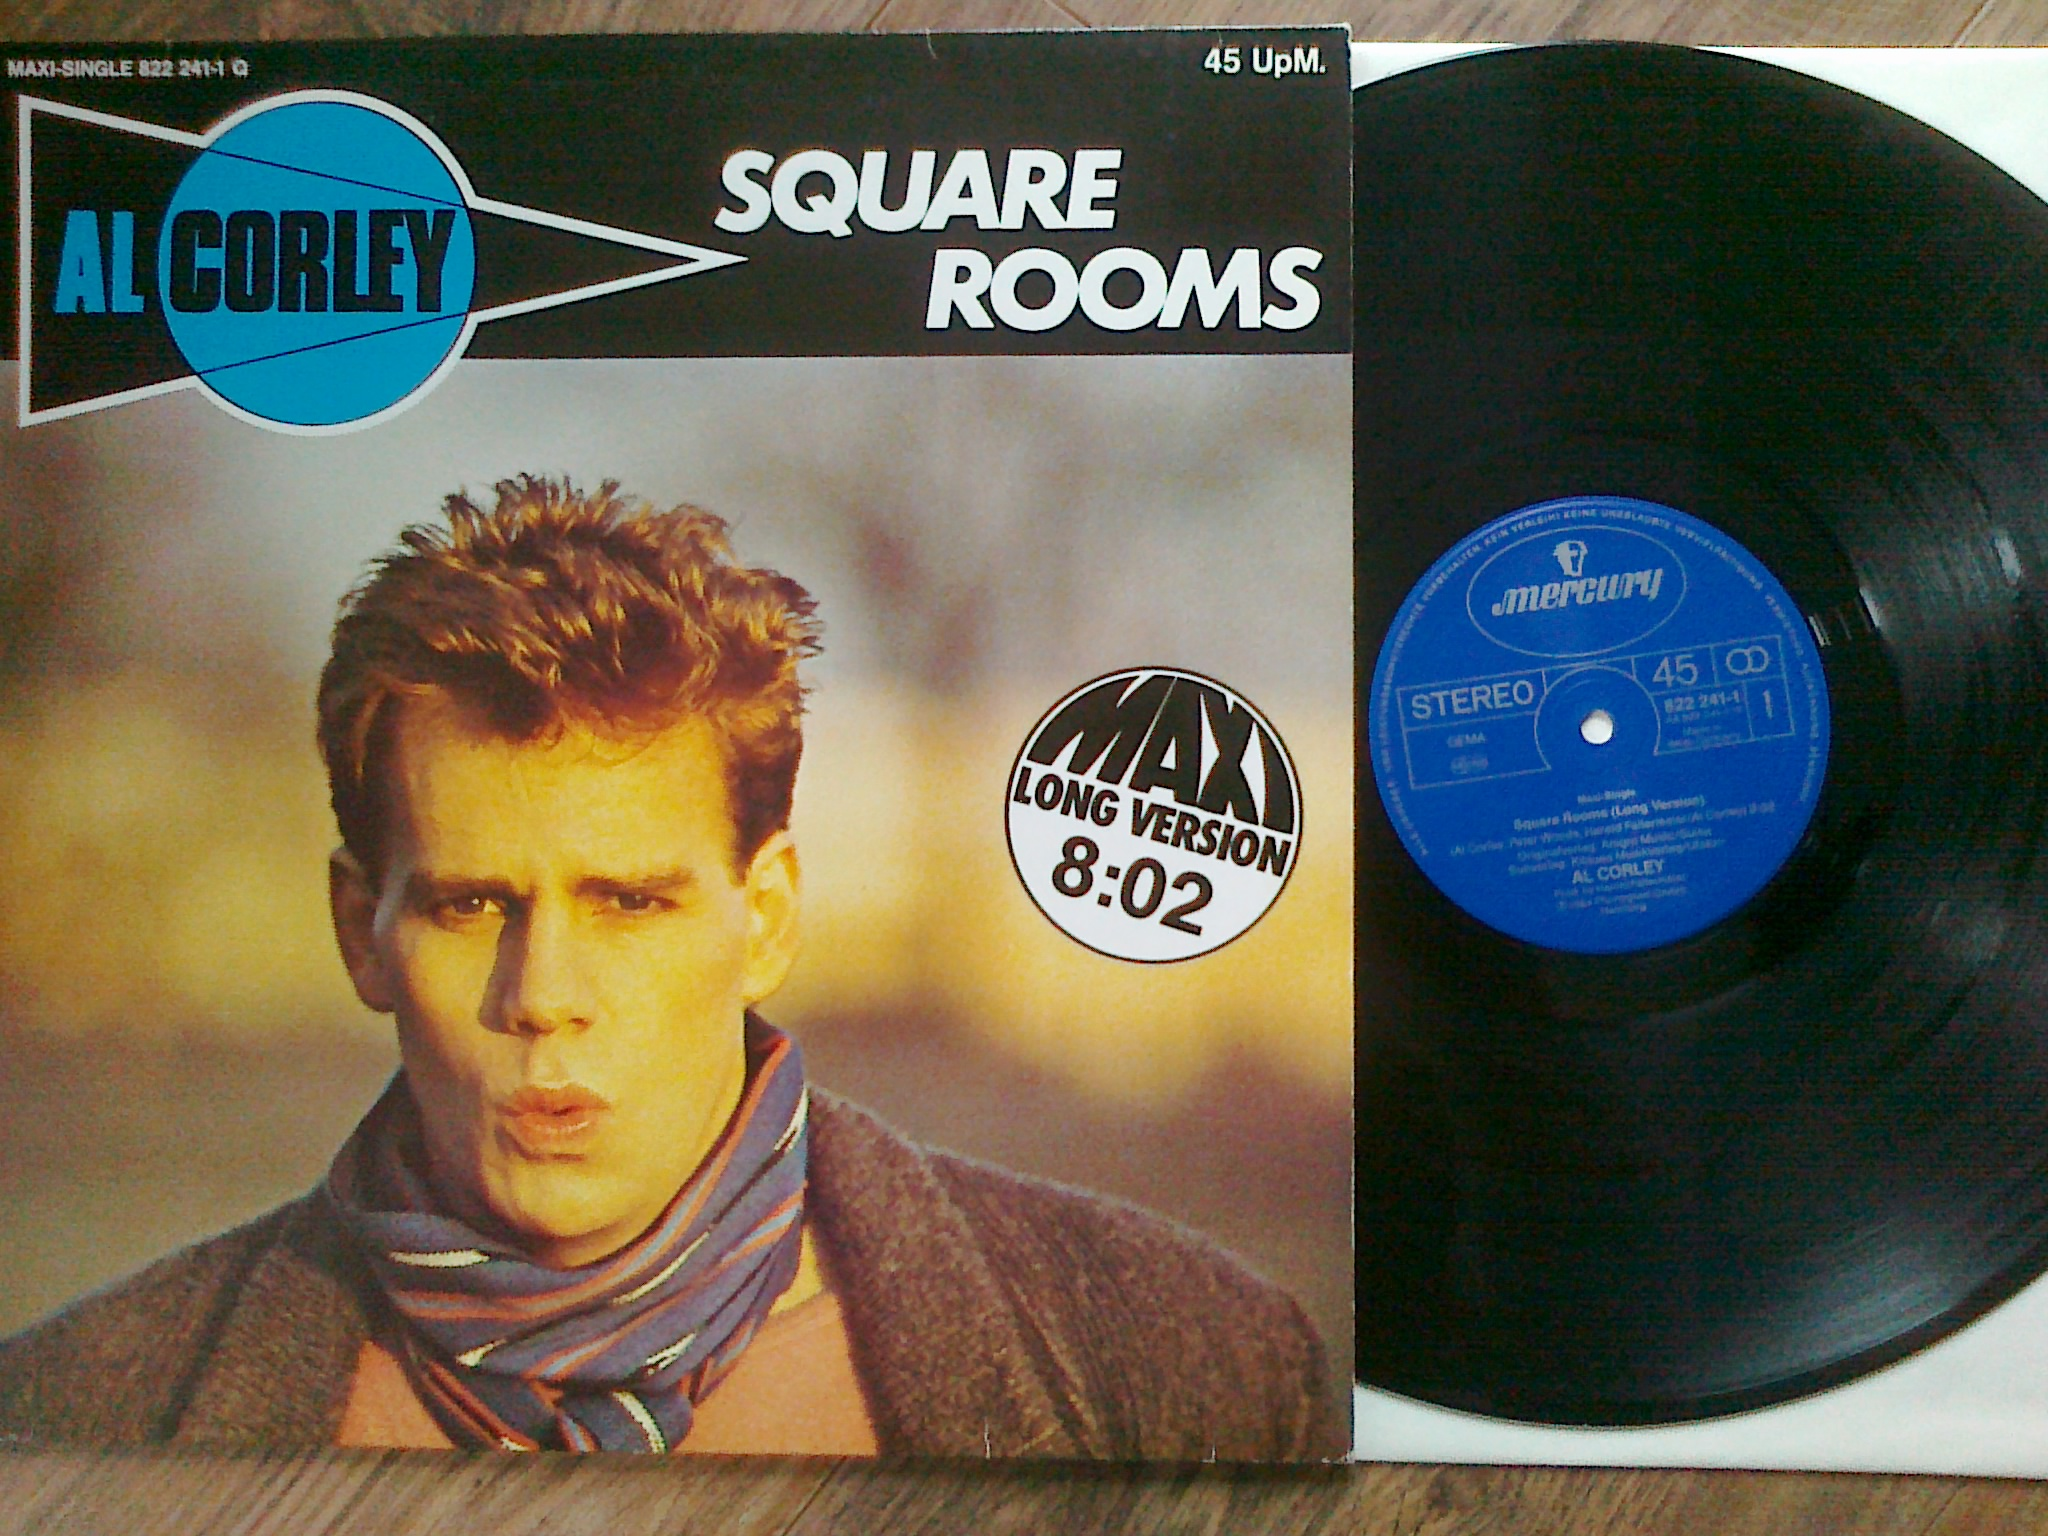 Al Corley - Squarde Rooms